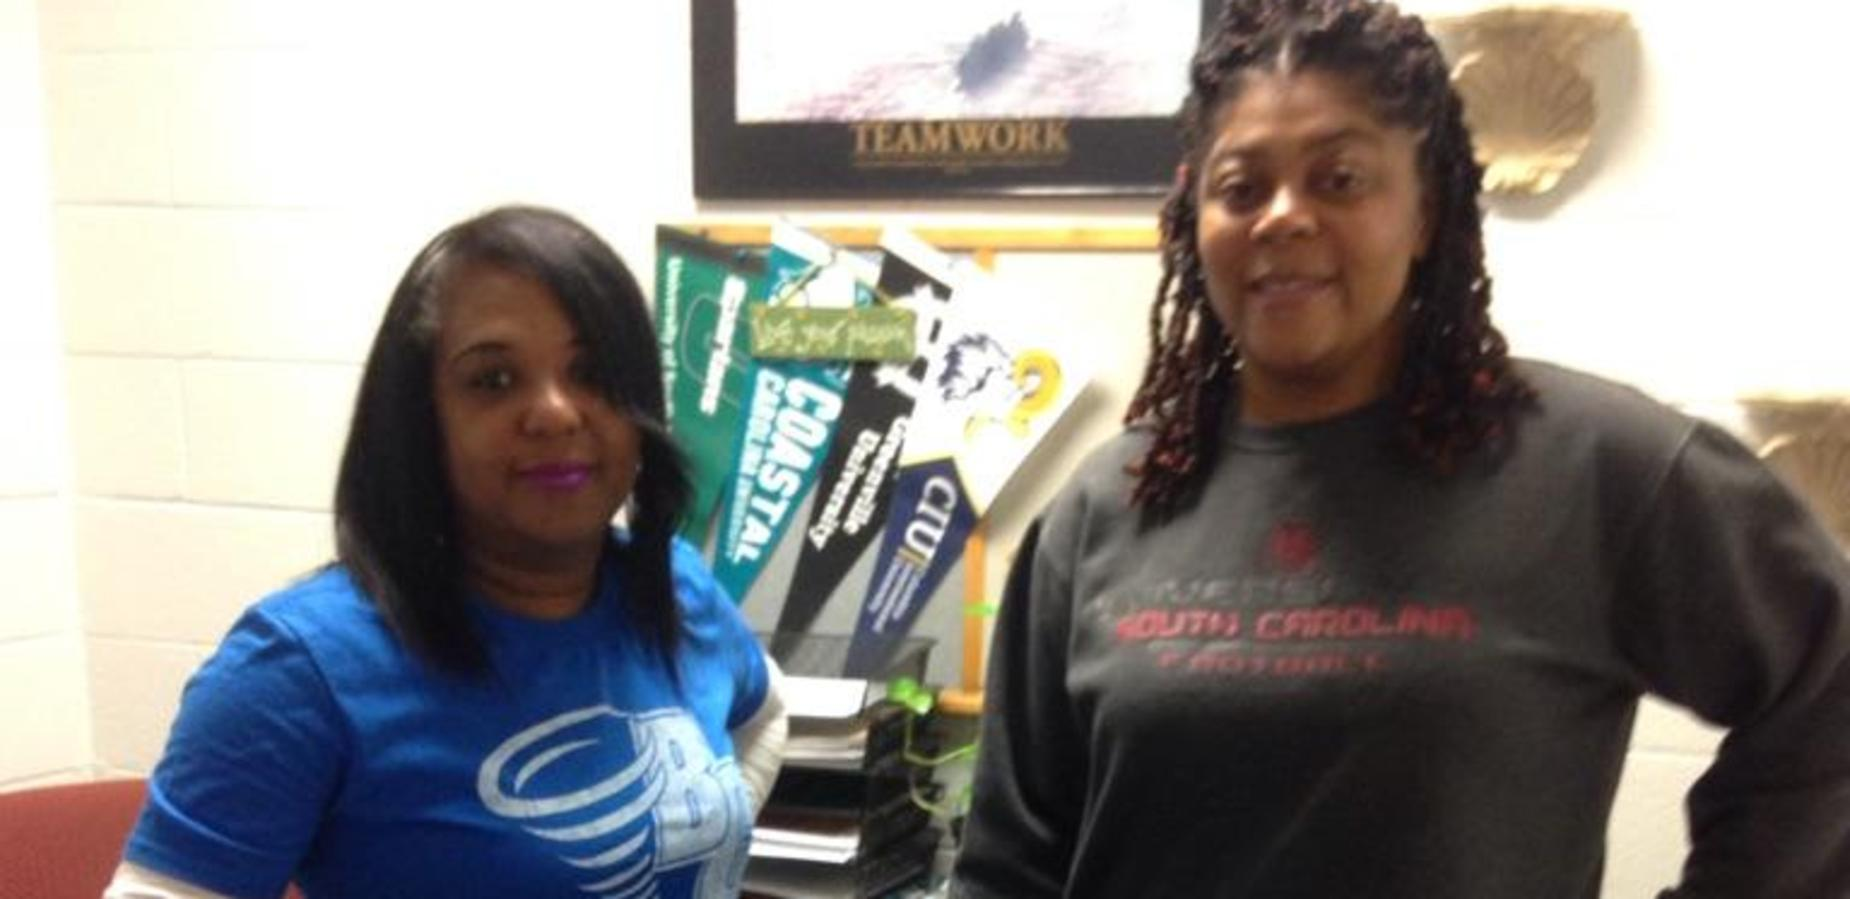 Two staff members wearing college shirts on College Day Wednesday